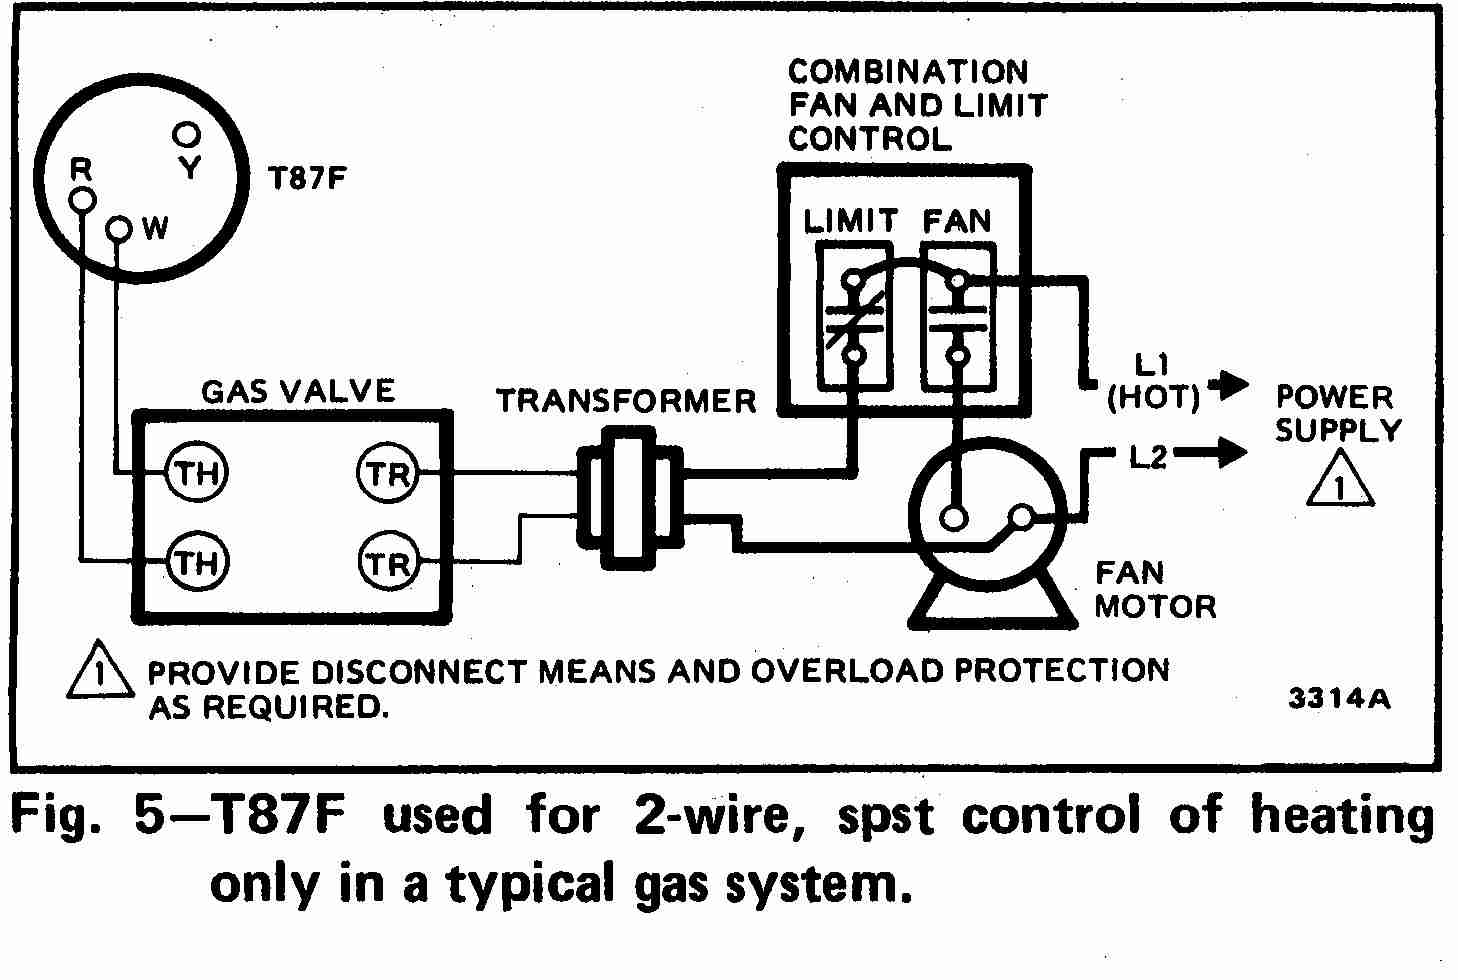 TT_T87F_0002_2Wg_DJF zone valve wiring installation & instructions guide to heating wiring diagram for a thermostat at bakdesigns.co